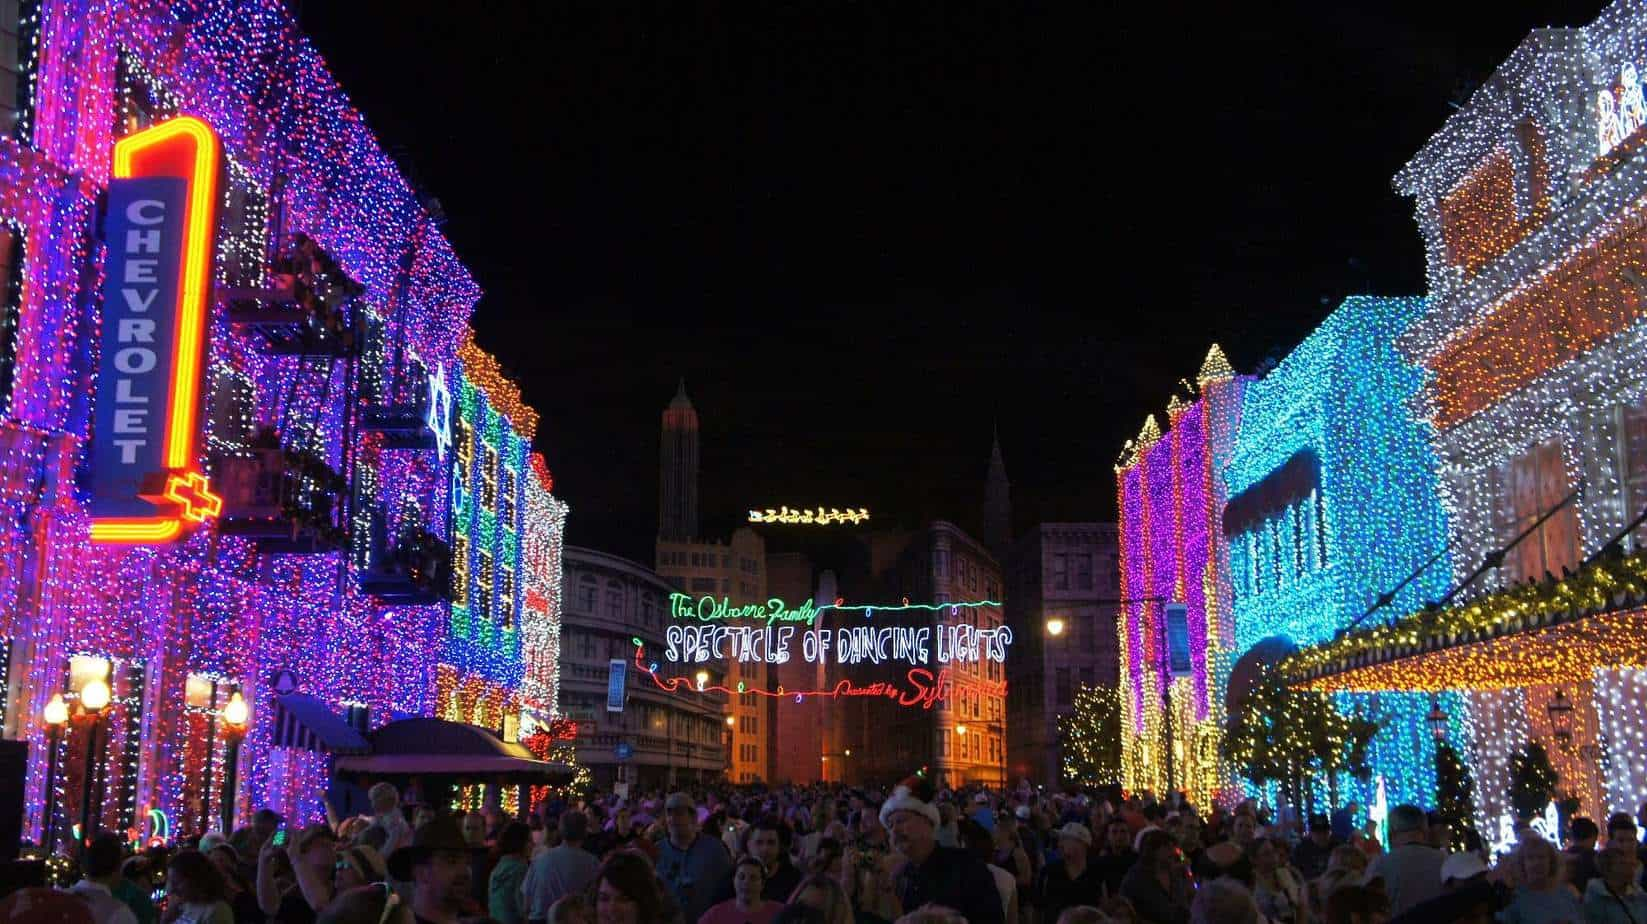 Osborne Family Spectacle of Dancing Lights christmas